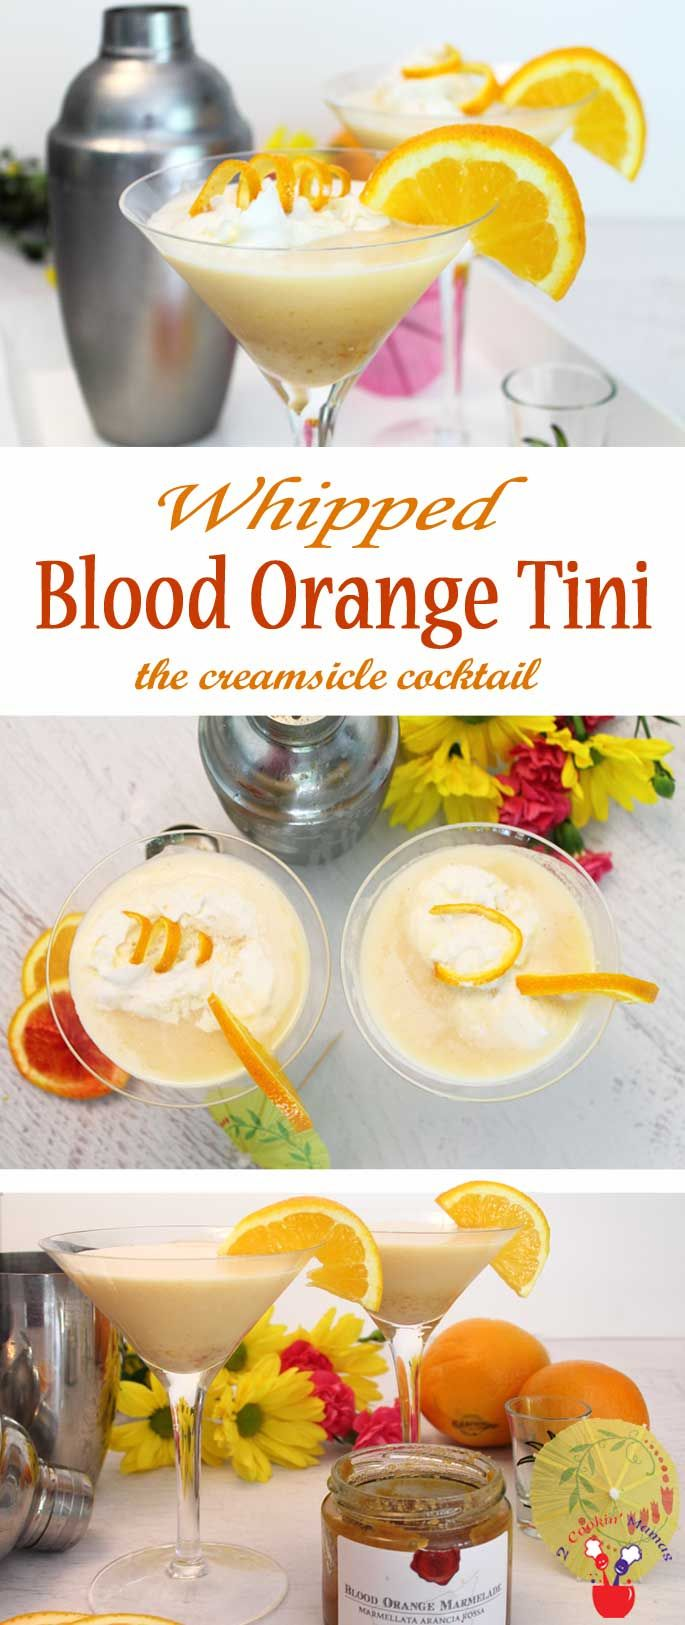 Our Whipped Blood Orange Tini tastes just like a creamy, ice cold creamsicle. The perfect summer cocktail combo of vodka, triple sec, blood orange marmalade, OJ & whipped cream. #sponsored via @2CookinMamas